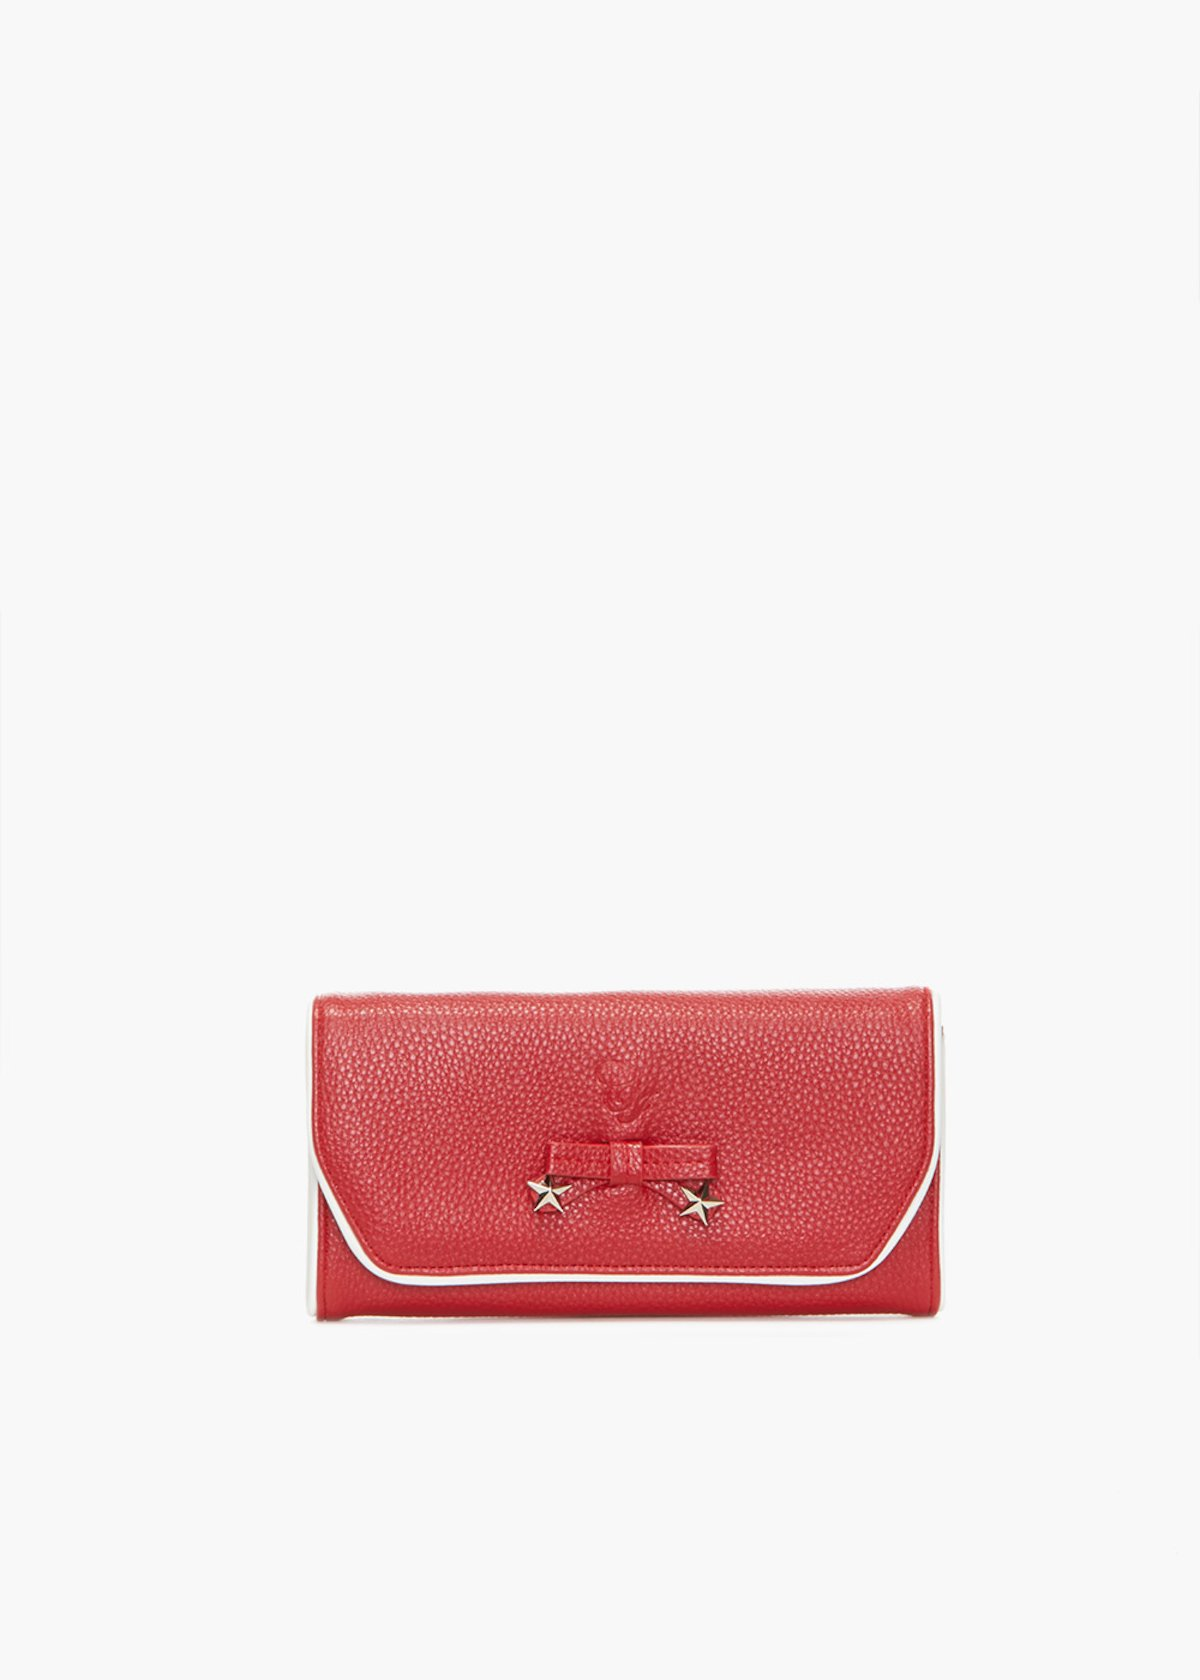 Popping Wallet with bow detail - Tulipano / White - Woman